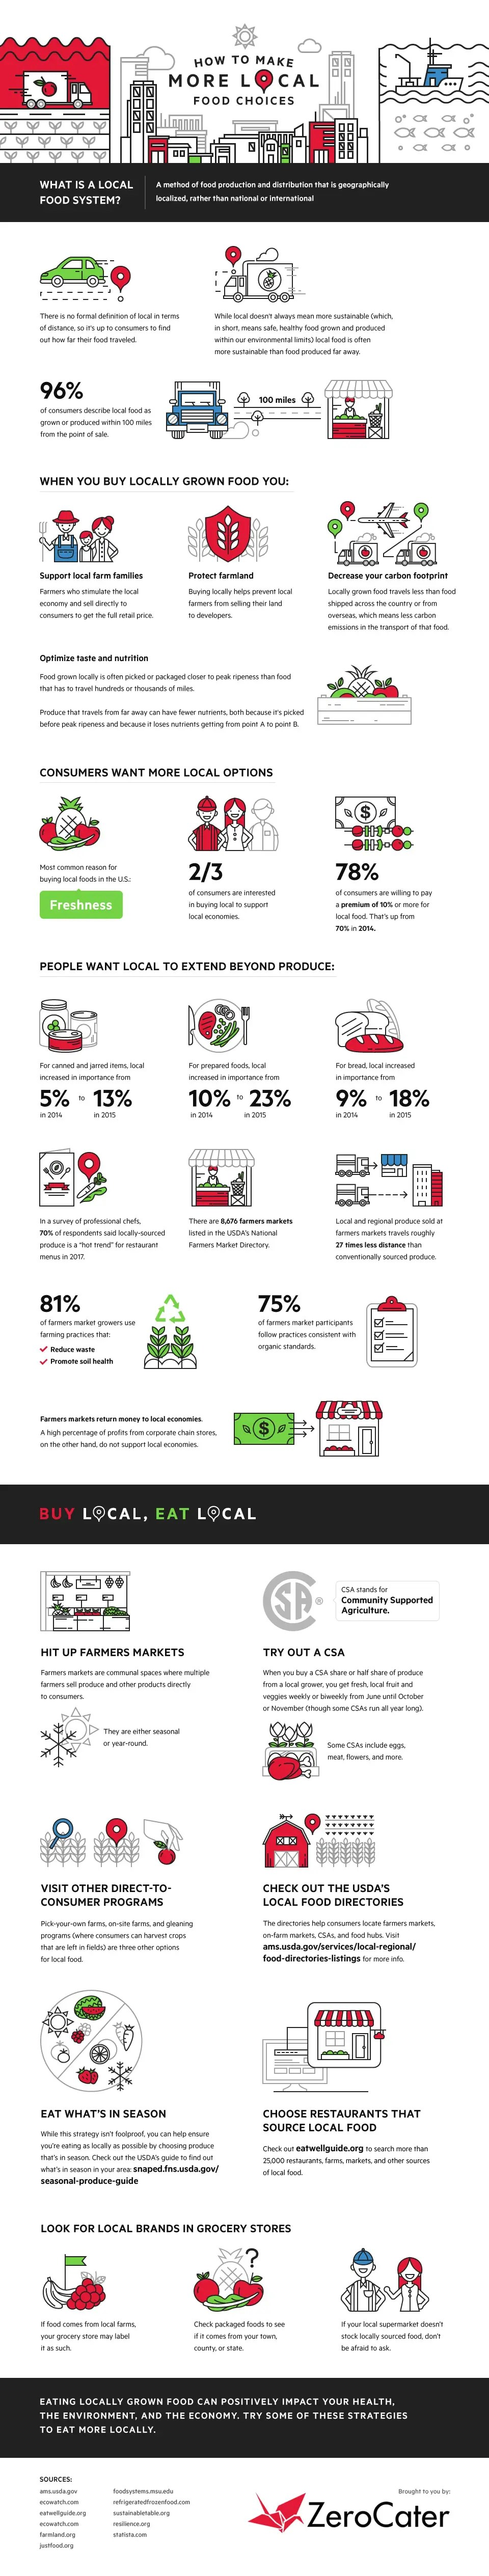 How To Make More Local Food Choices InfoGraphics